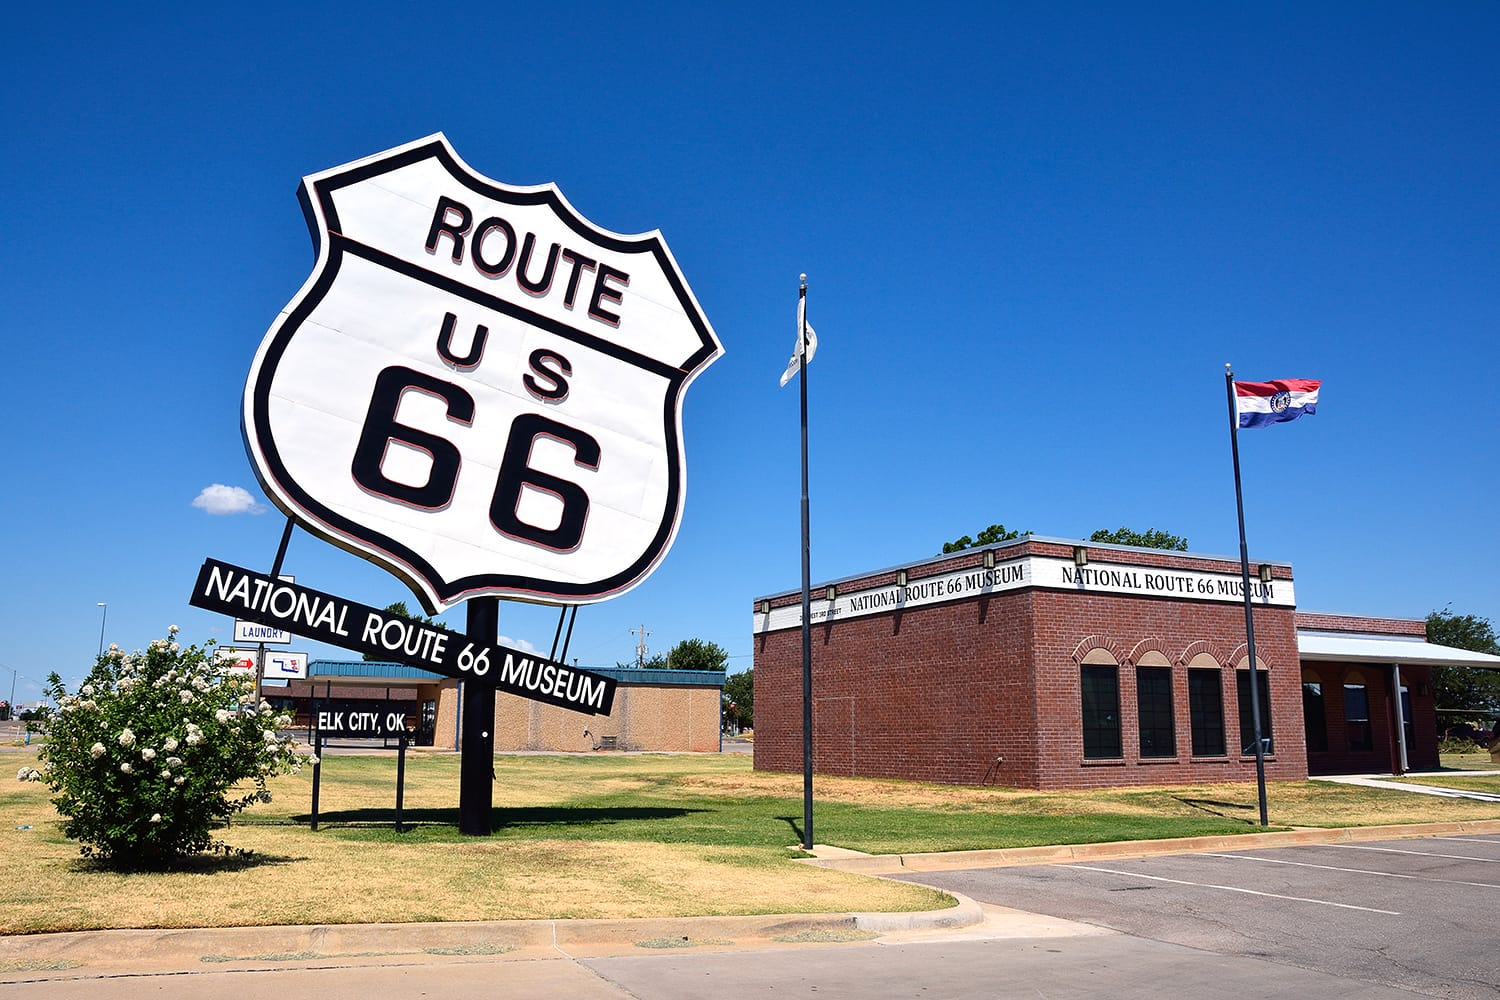 The biggest Route US 66 sign by the National Route 66 Museum in Elk City, Oklahoma